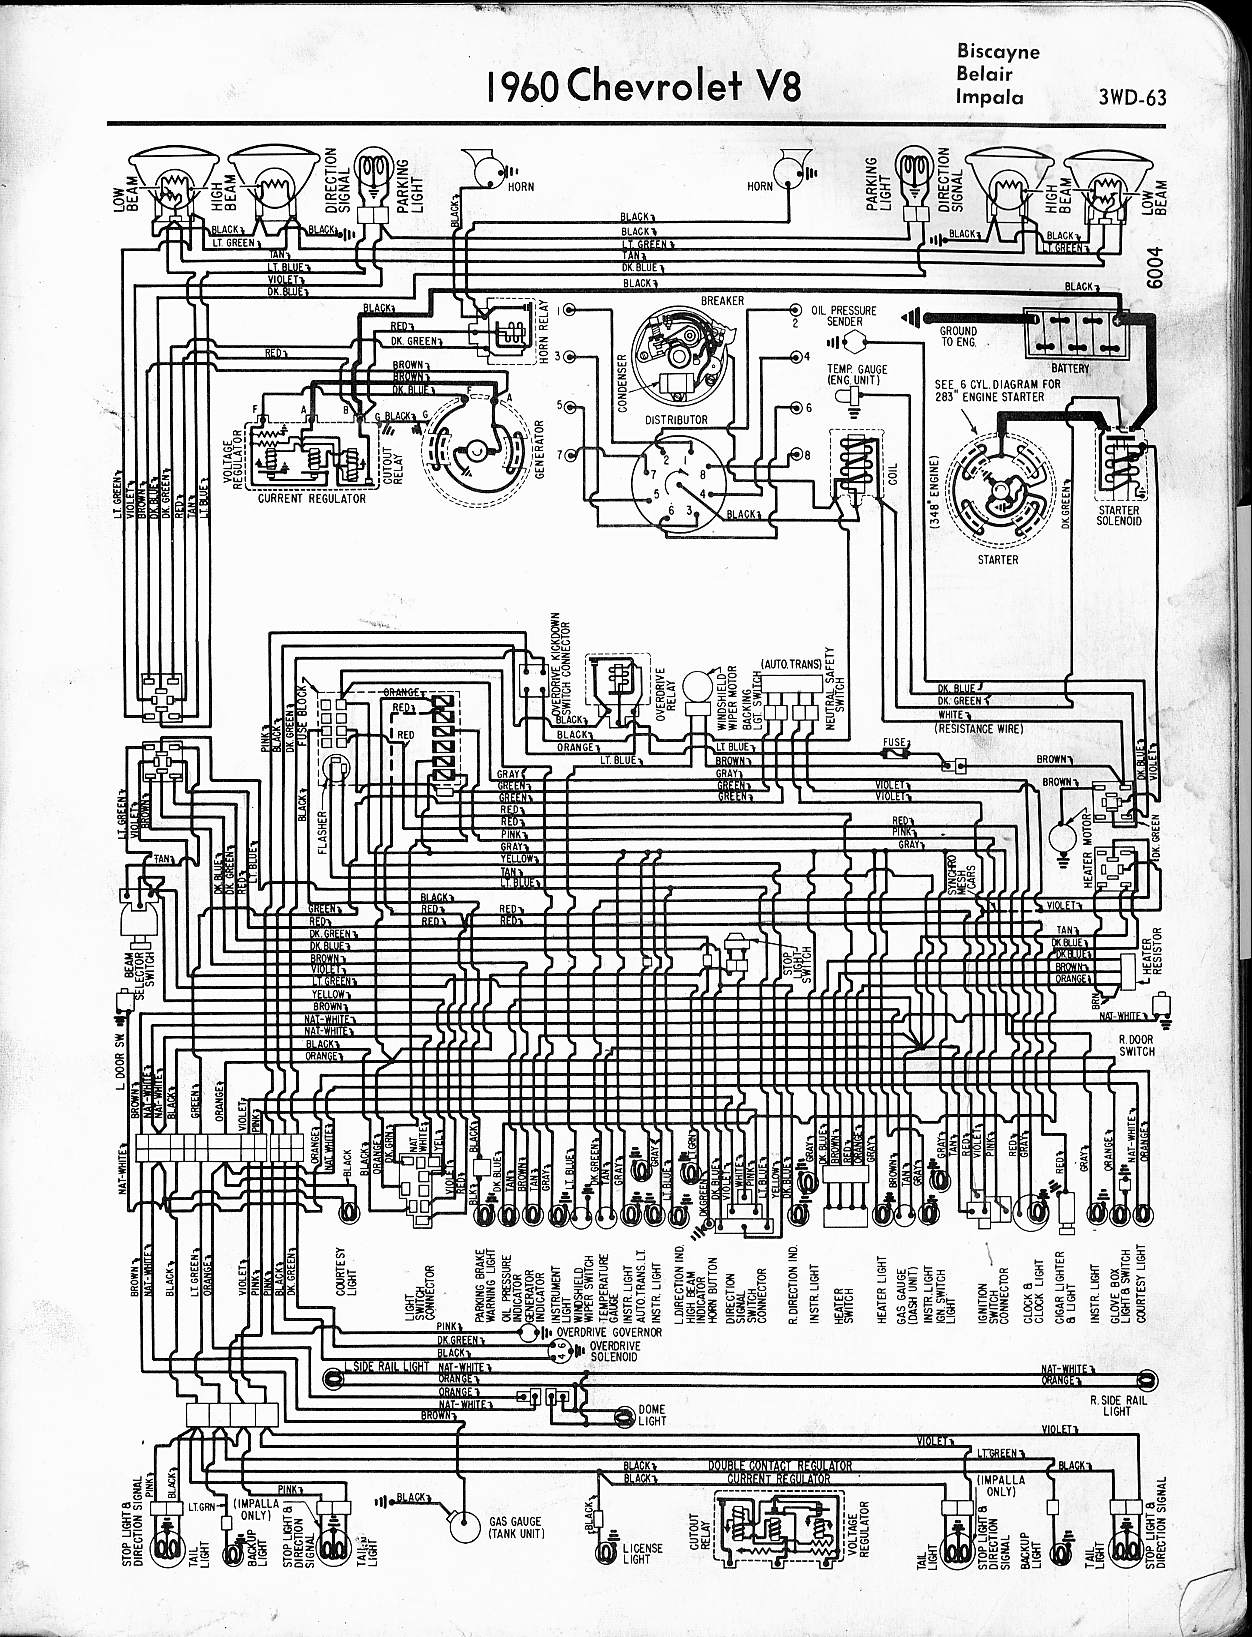 1964 impala wiring diagram trusted schematics wiring diagrams u2022 rh bestbooksrichtreasures com